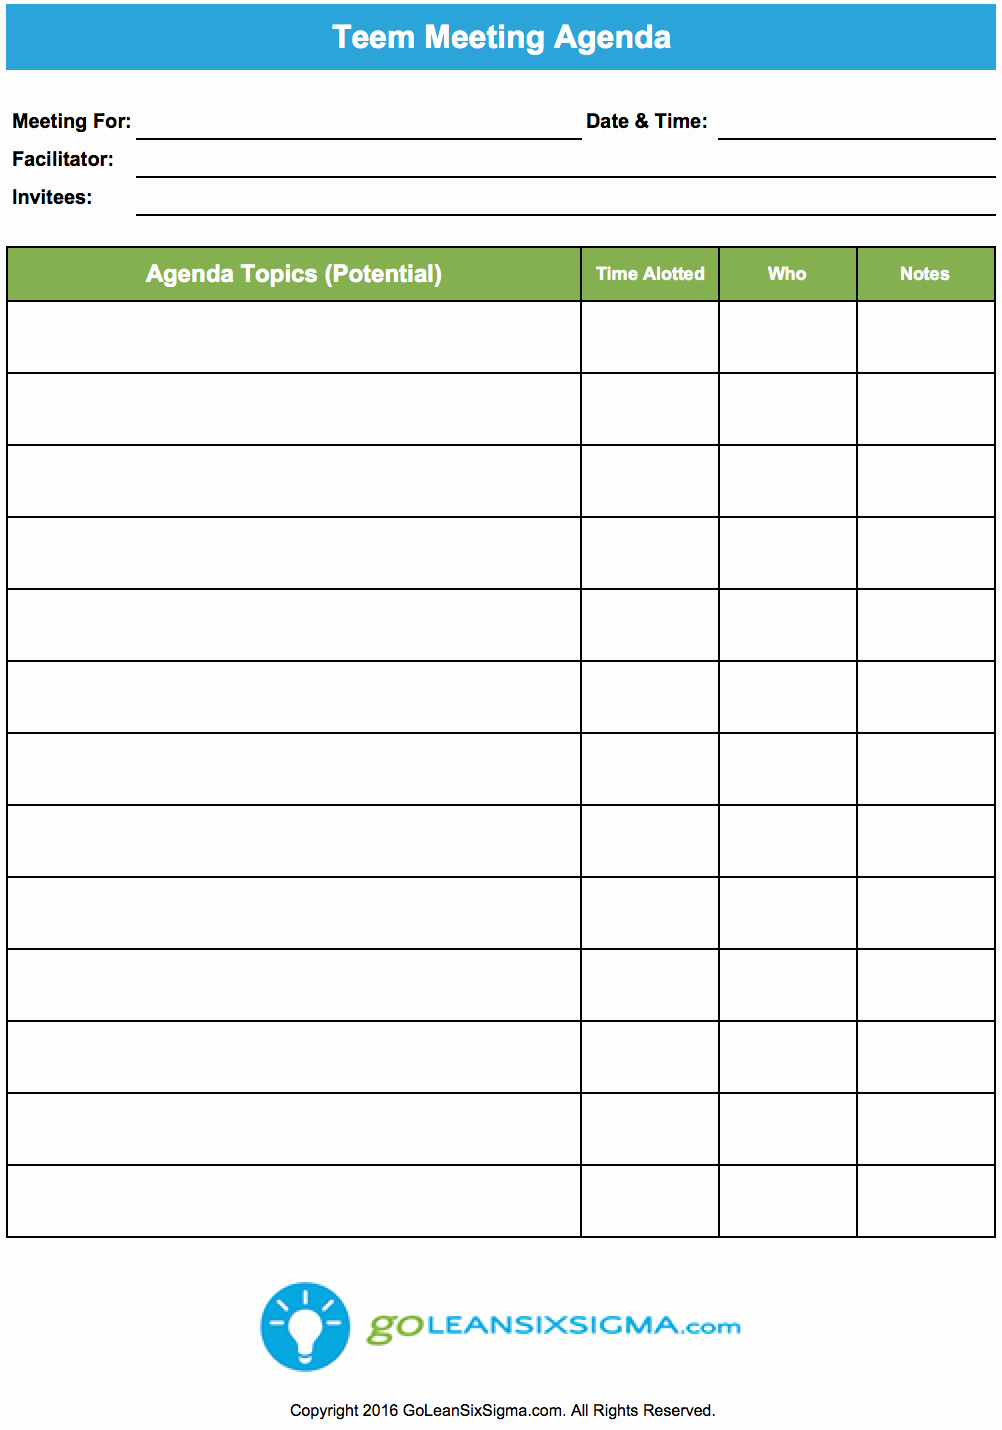 Meeting Agenda with Notes Template Awesome Team Meeting Agenda Goleansixsigma